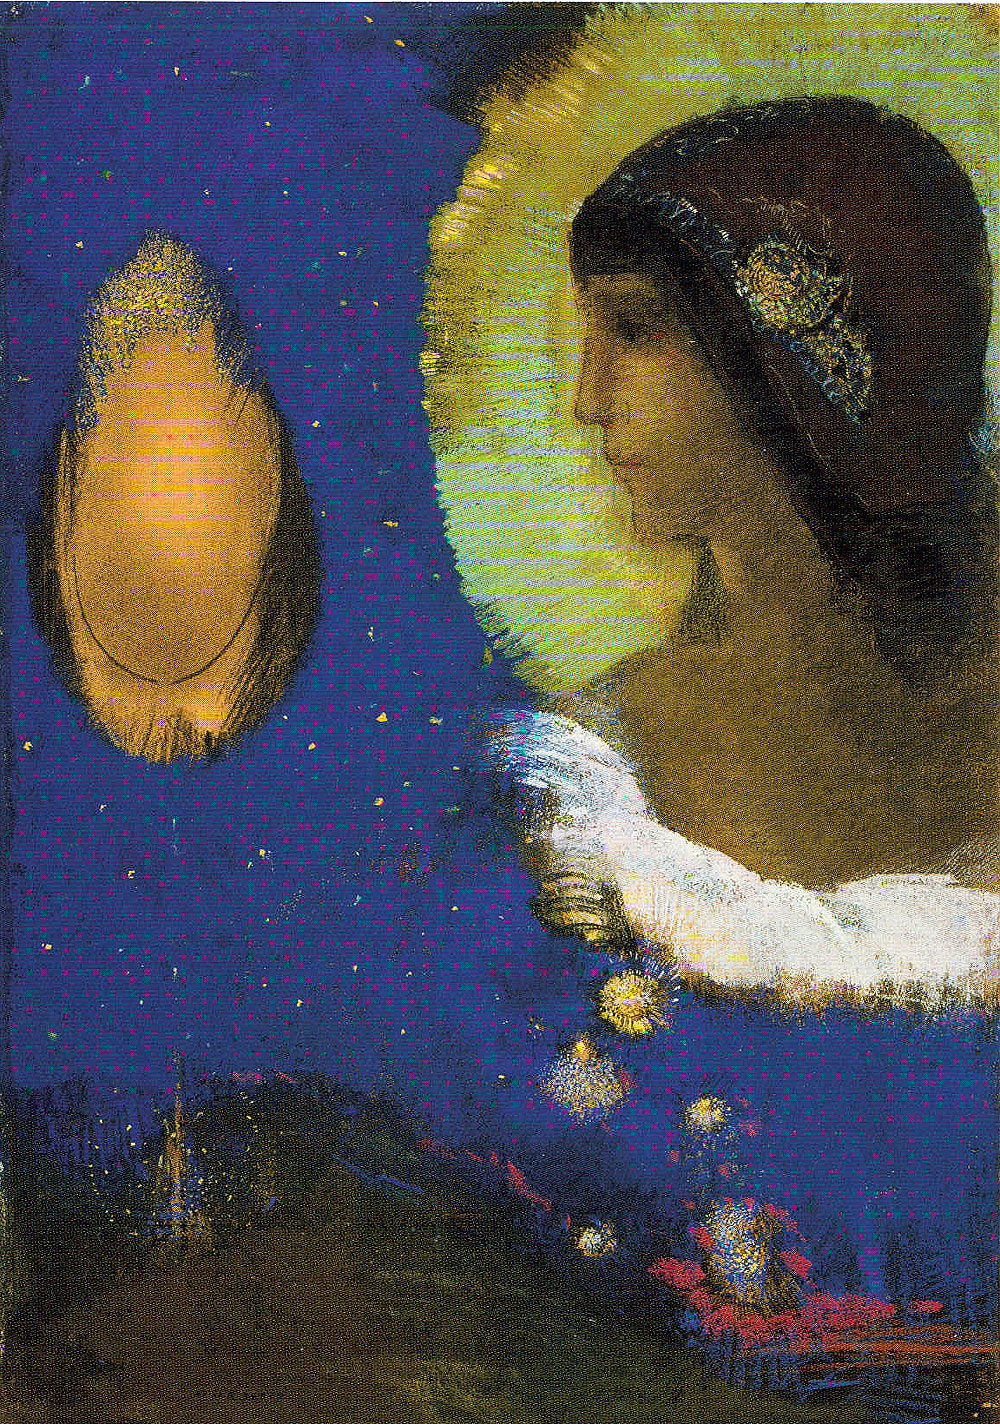 Sita, ca. 1893, by Odilon Redon (French, 1840–1916). Pastel, conté crayon, and charcoal on paper. The Art Institute of Chicago, Joseph Winterbotham Collection, 1954.320.